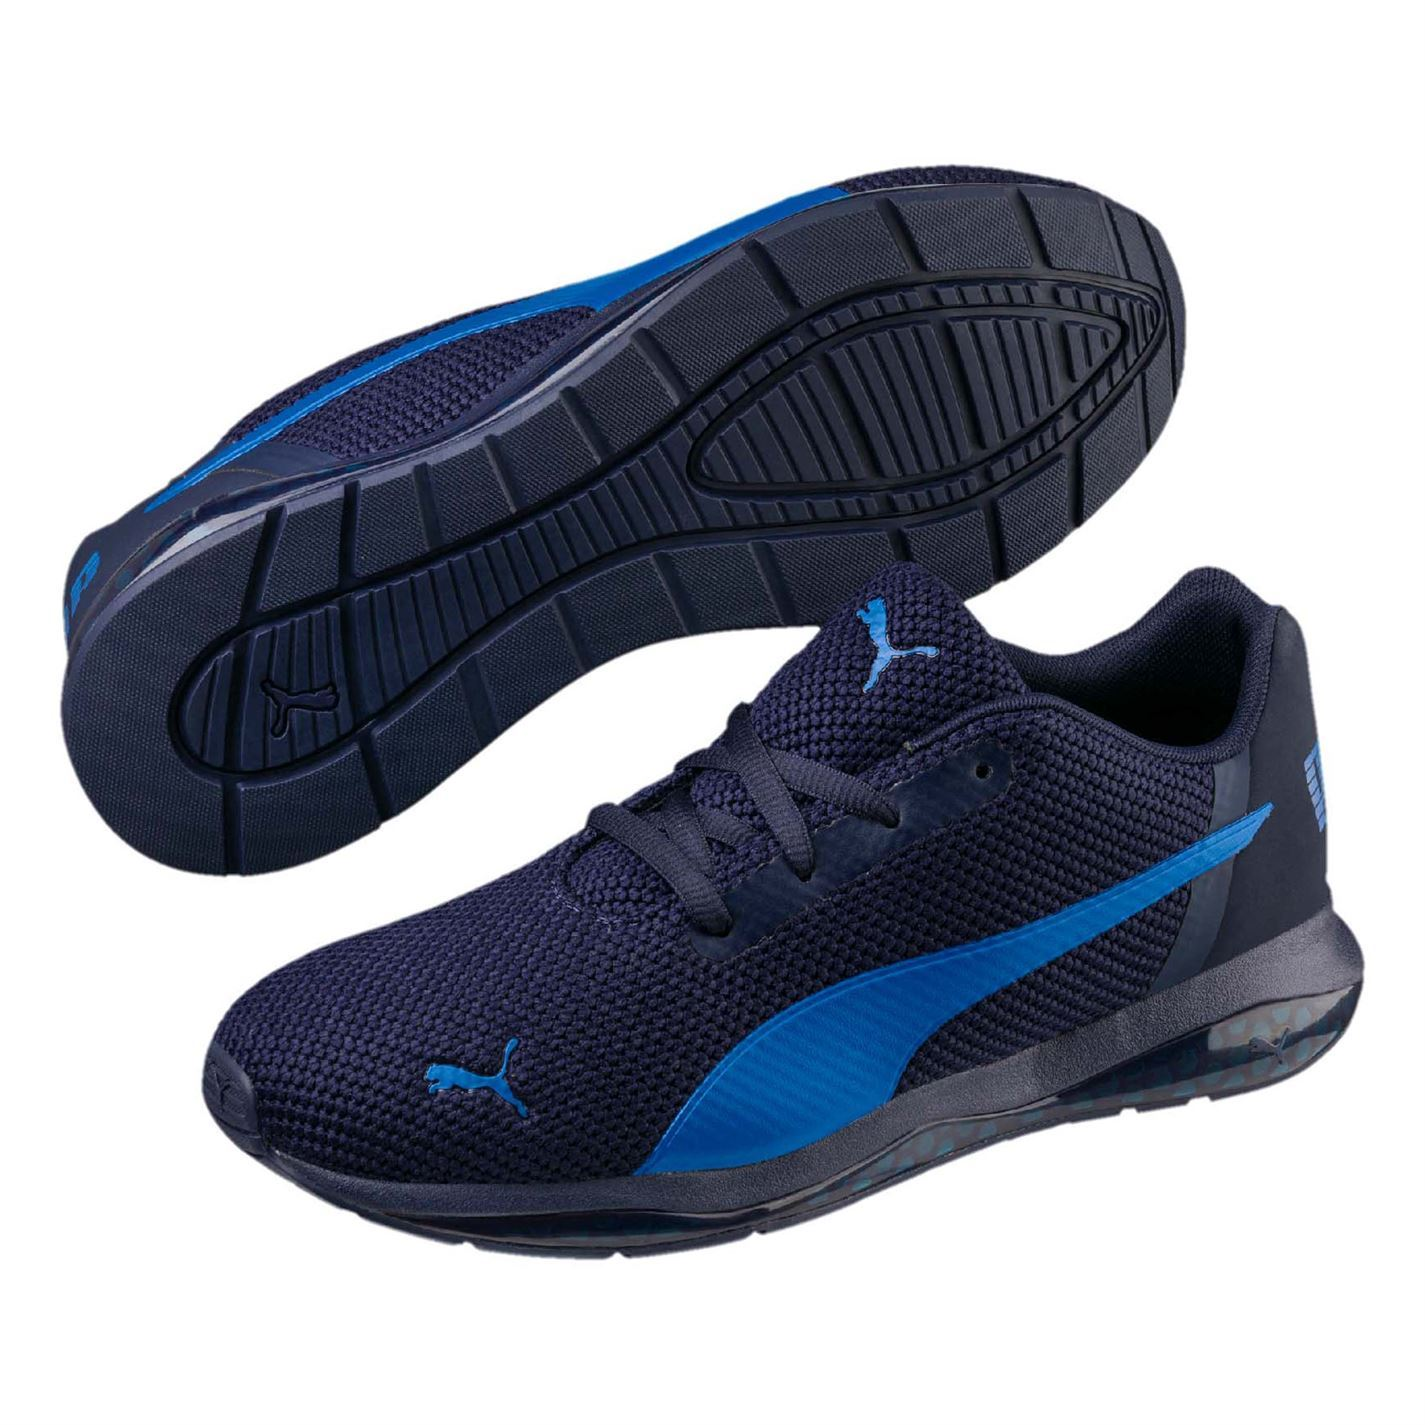 Details about Puma Retaliate Running Shoes Mens Fitness Jogging Trainers Sneakers